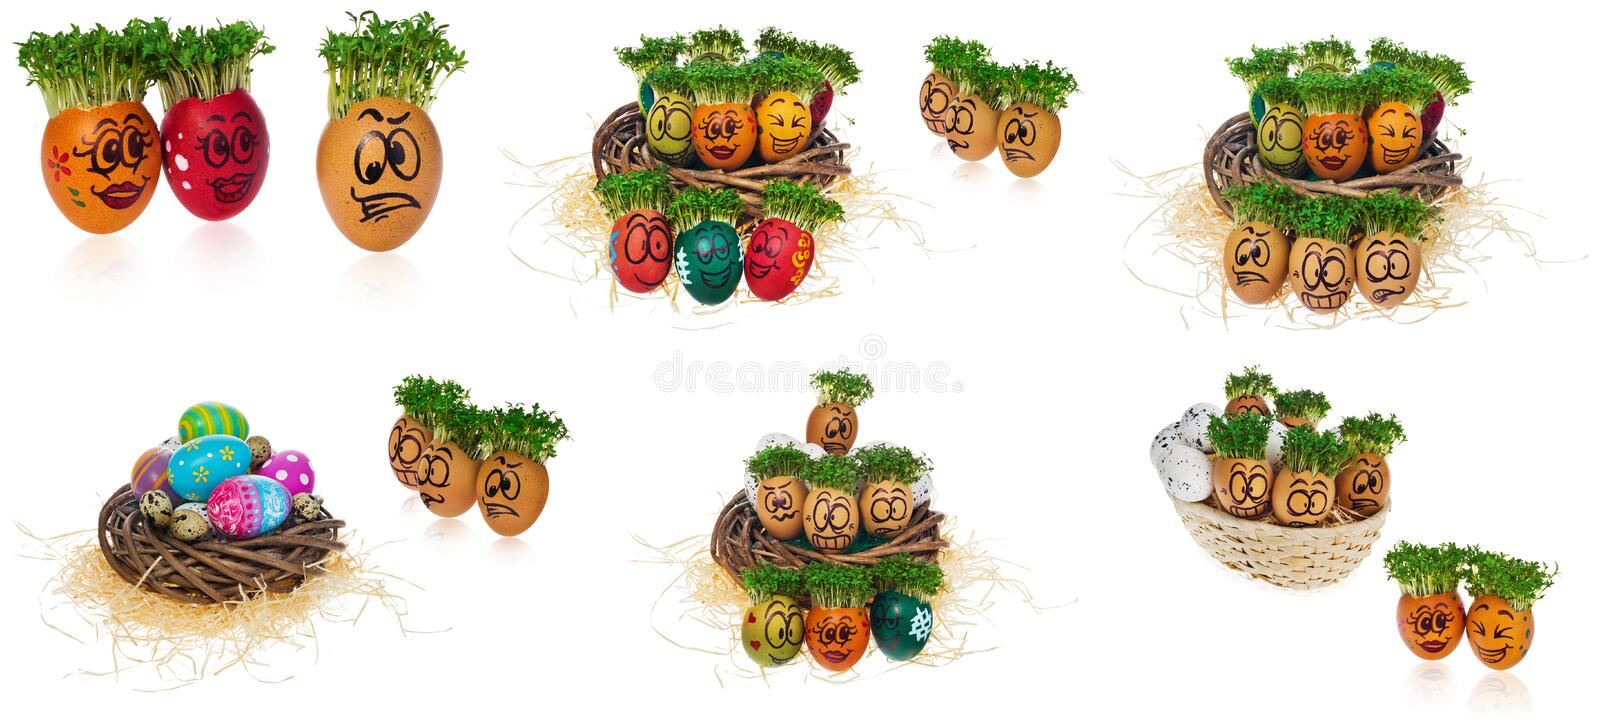 Handpainted Easter eggs in funny scared and surprised cartoonish faces in the basket with cress like hair look at the outstanding royalty free stock images